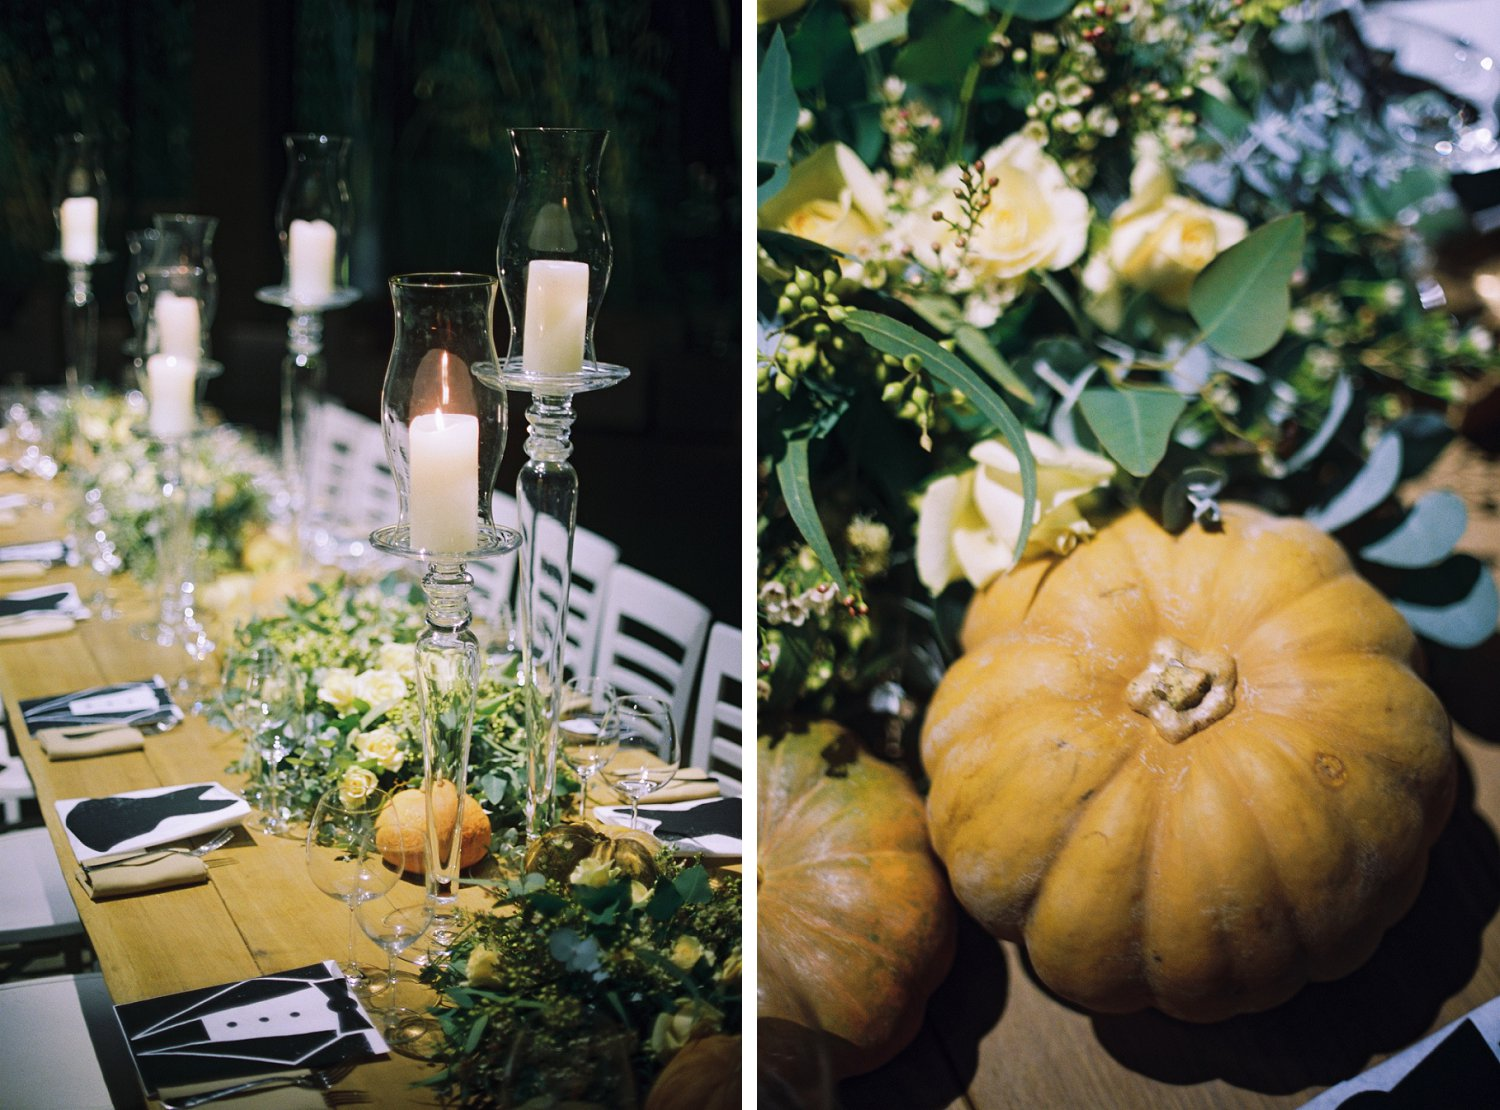 Thanksgiving themed table settings and design at Baya'ar wedding